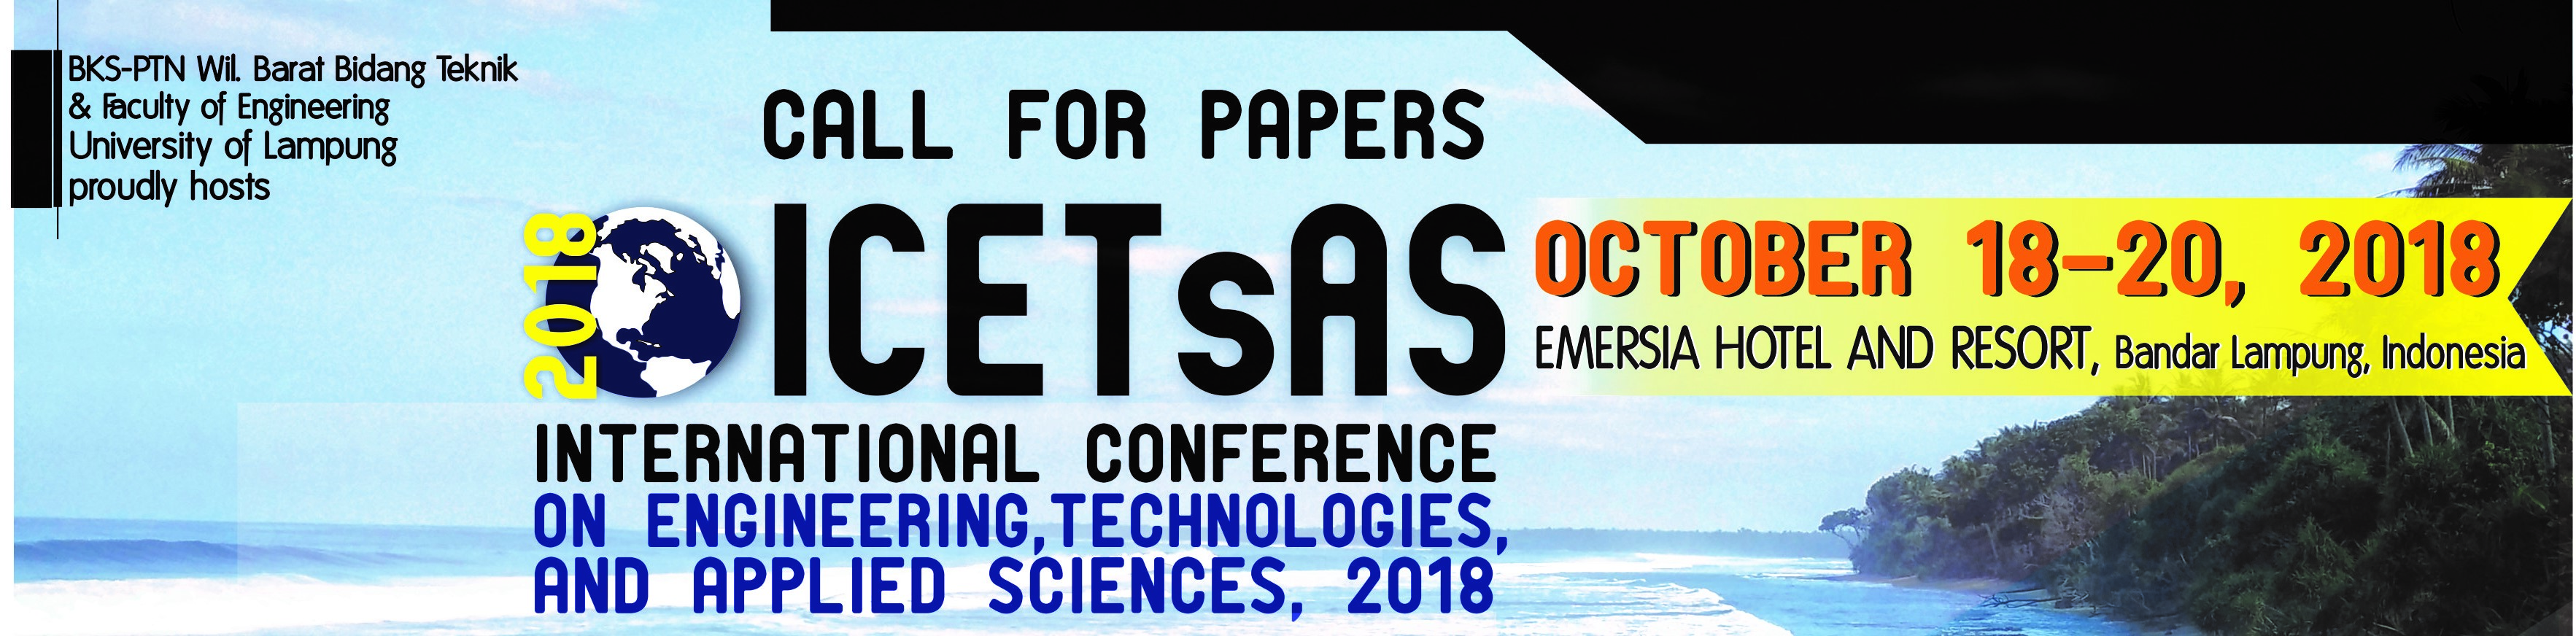 ICETsAS 2018 University Of Lampung